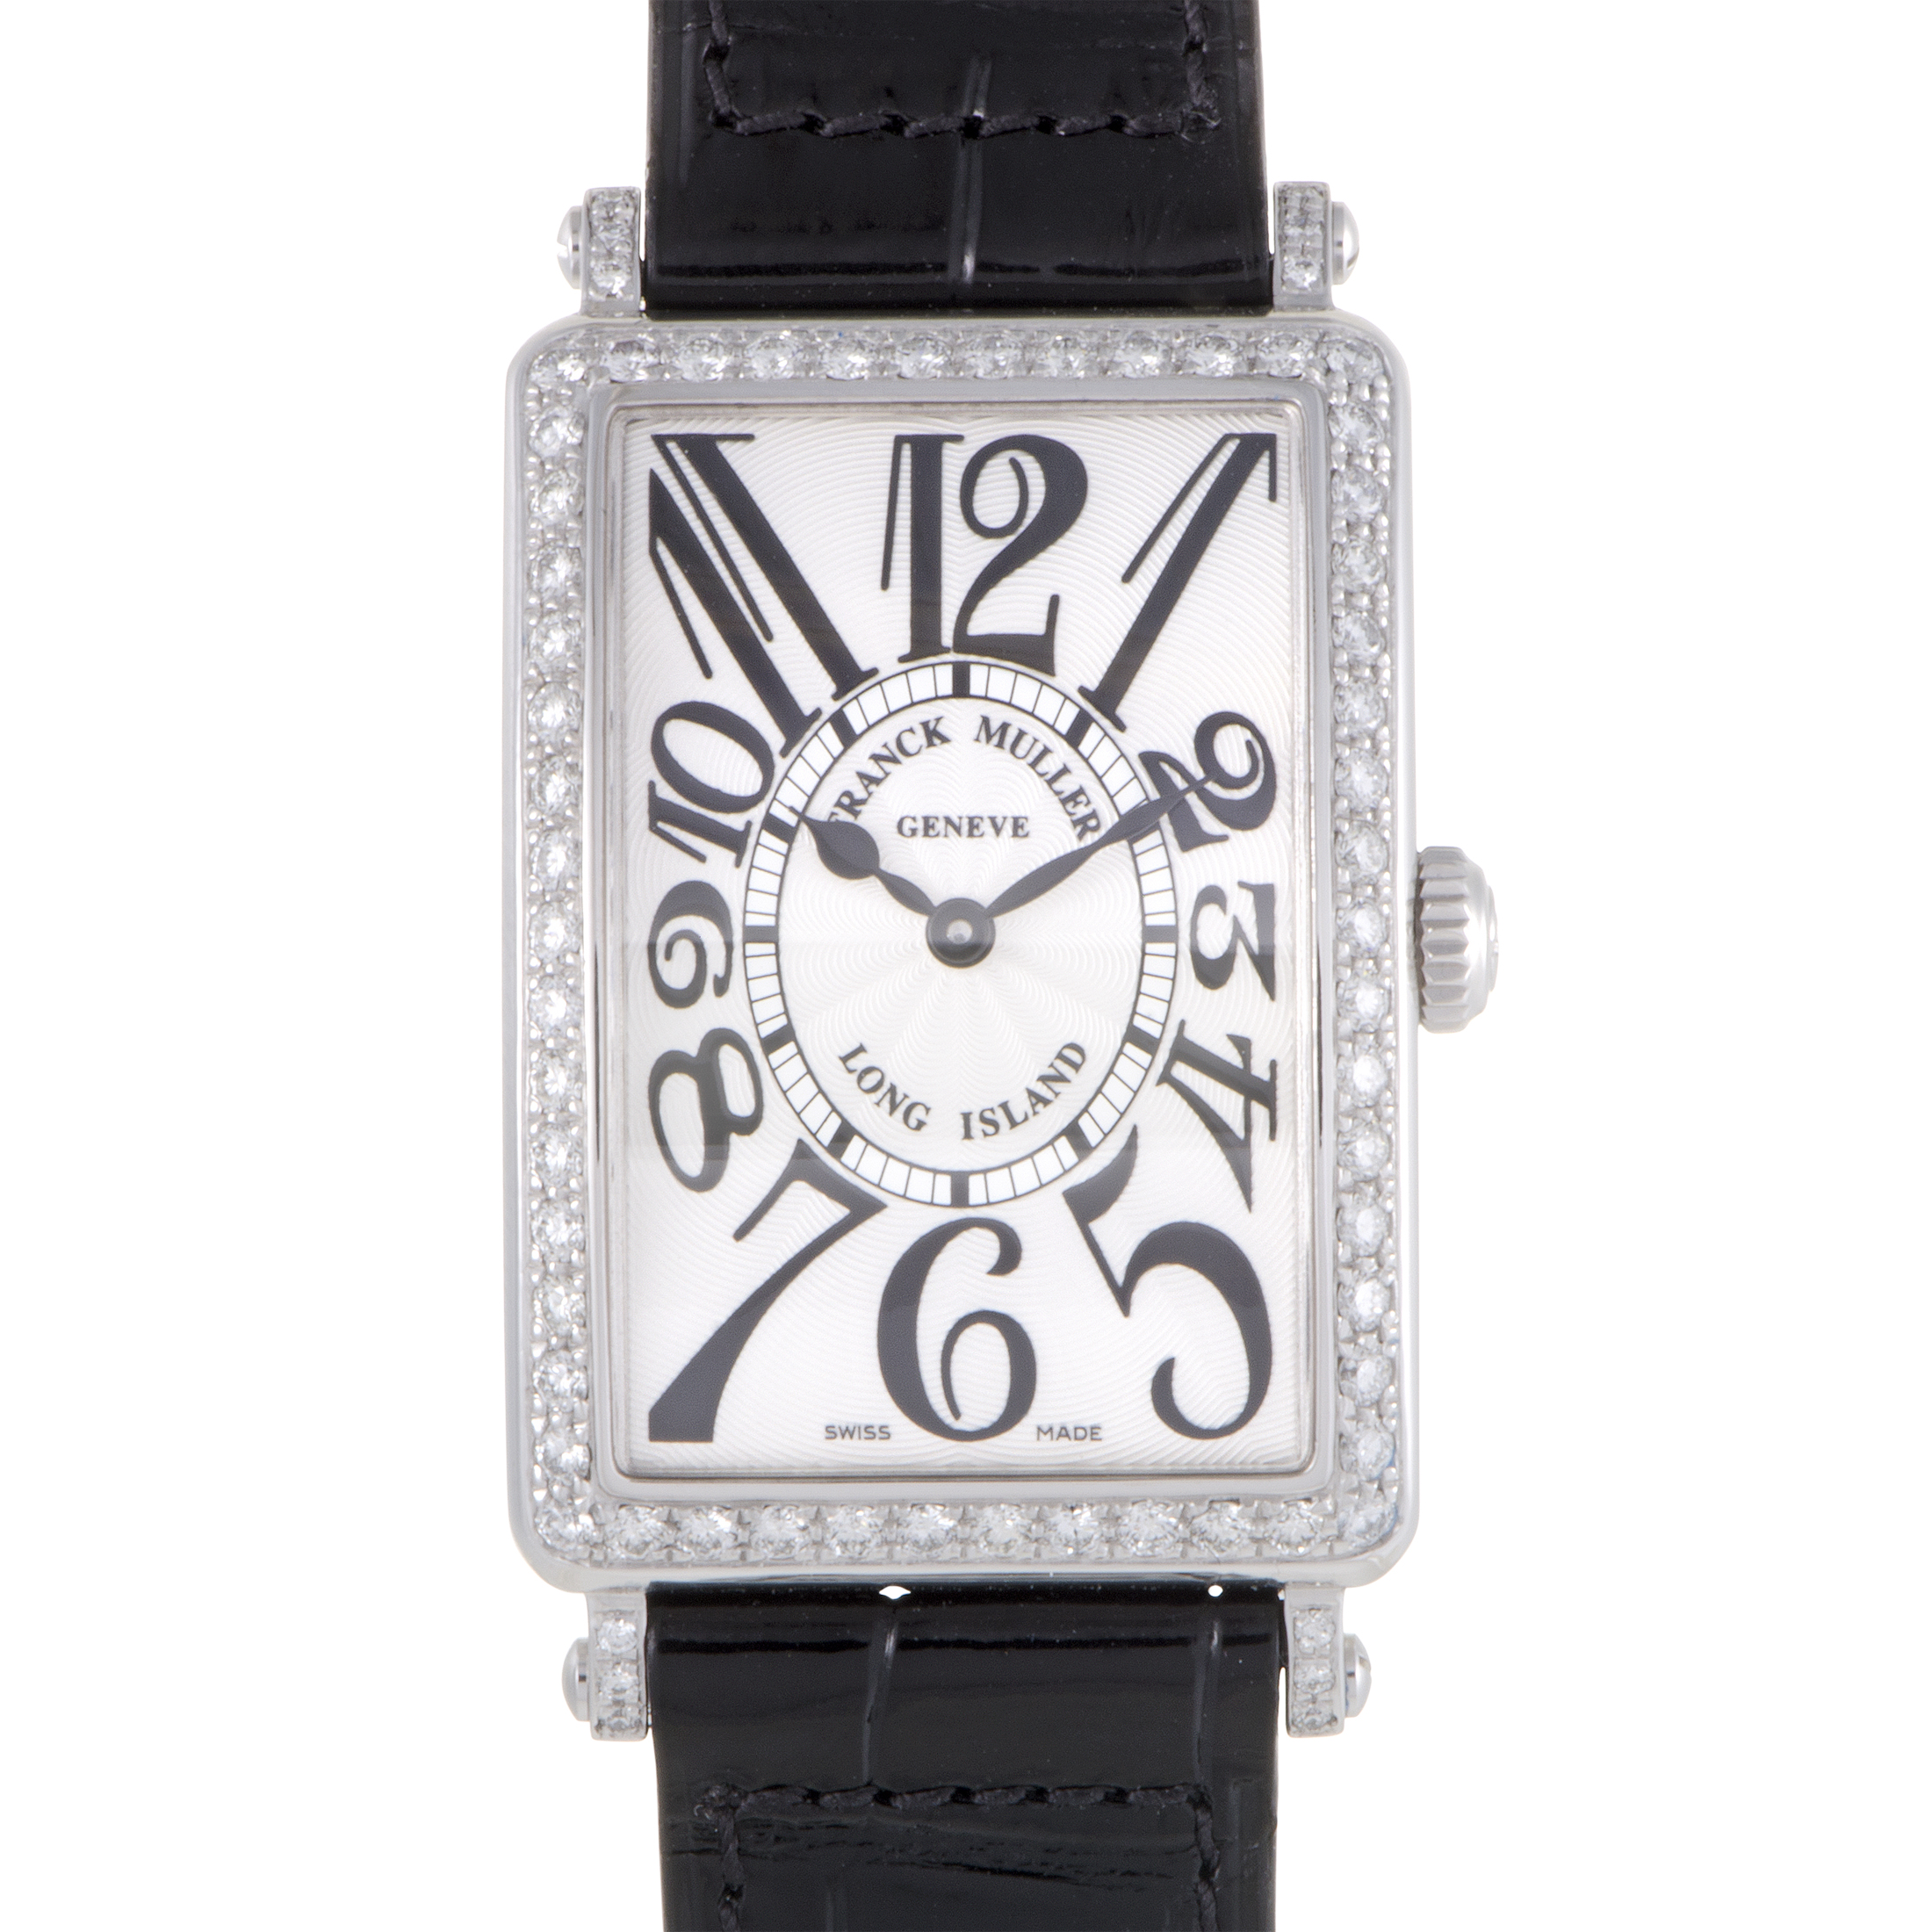 Franck muller long island womens quartz steel diamond watch 952 qz d 1rblvac blk ebay for Franck muller watches